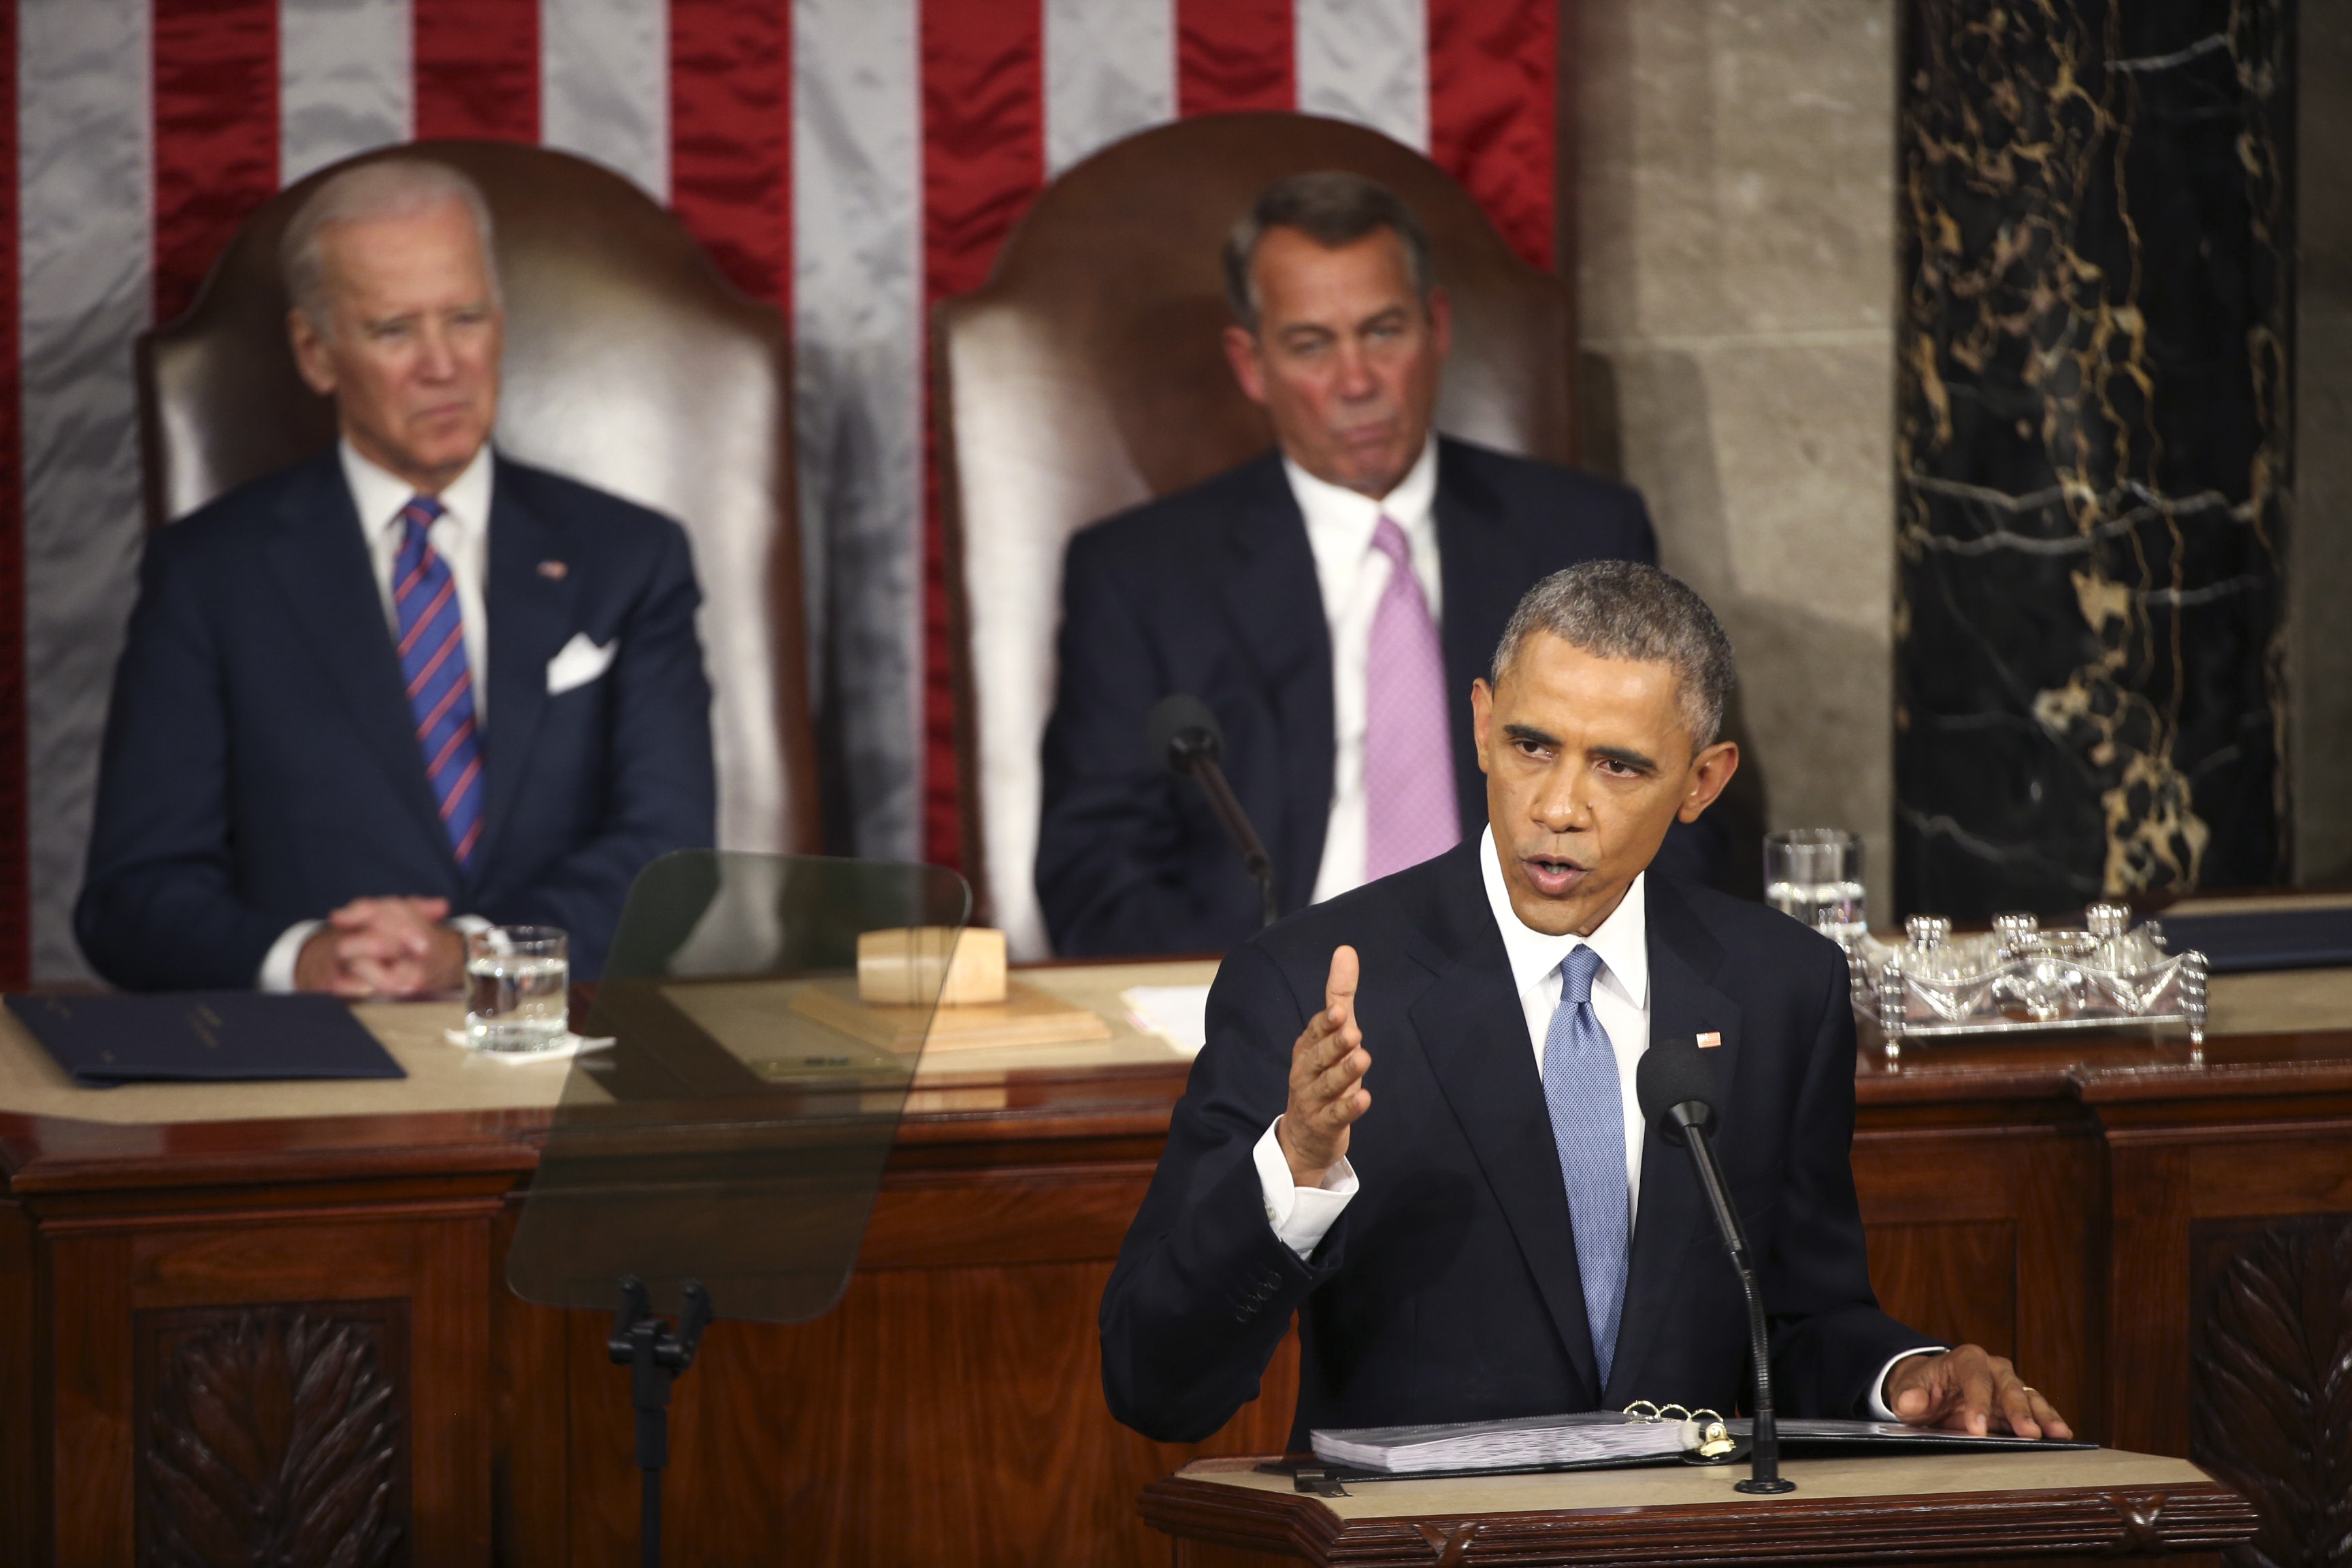 President Obama delivers his State of the Union address in the House chamber. (New York Times photo)